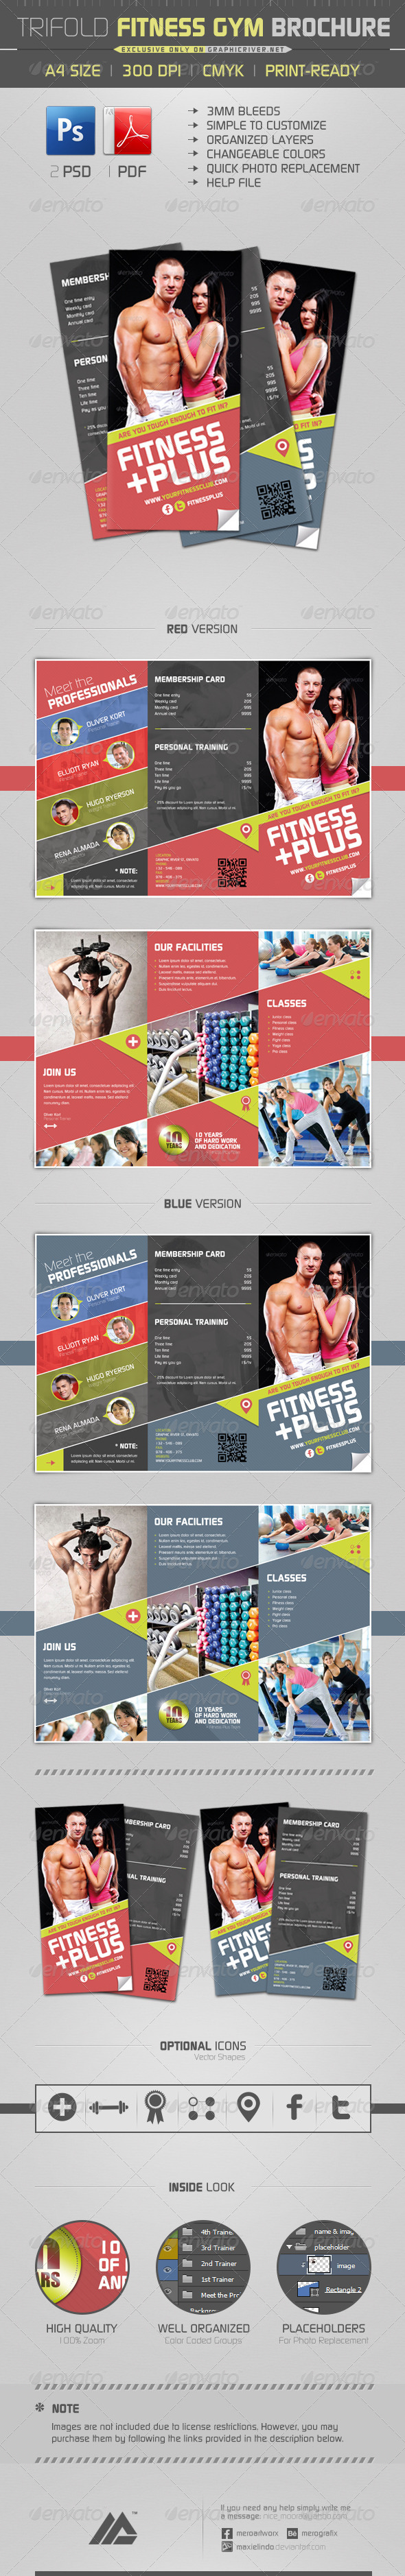 GraphicRiver Trifold Fitness Gym Brochure PSD 6382671